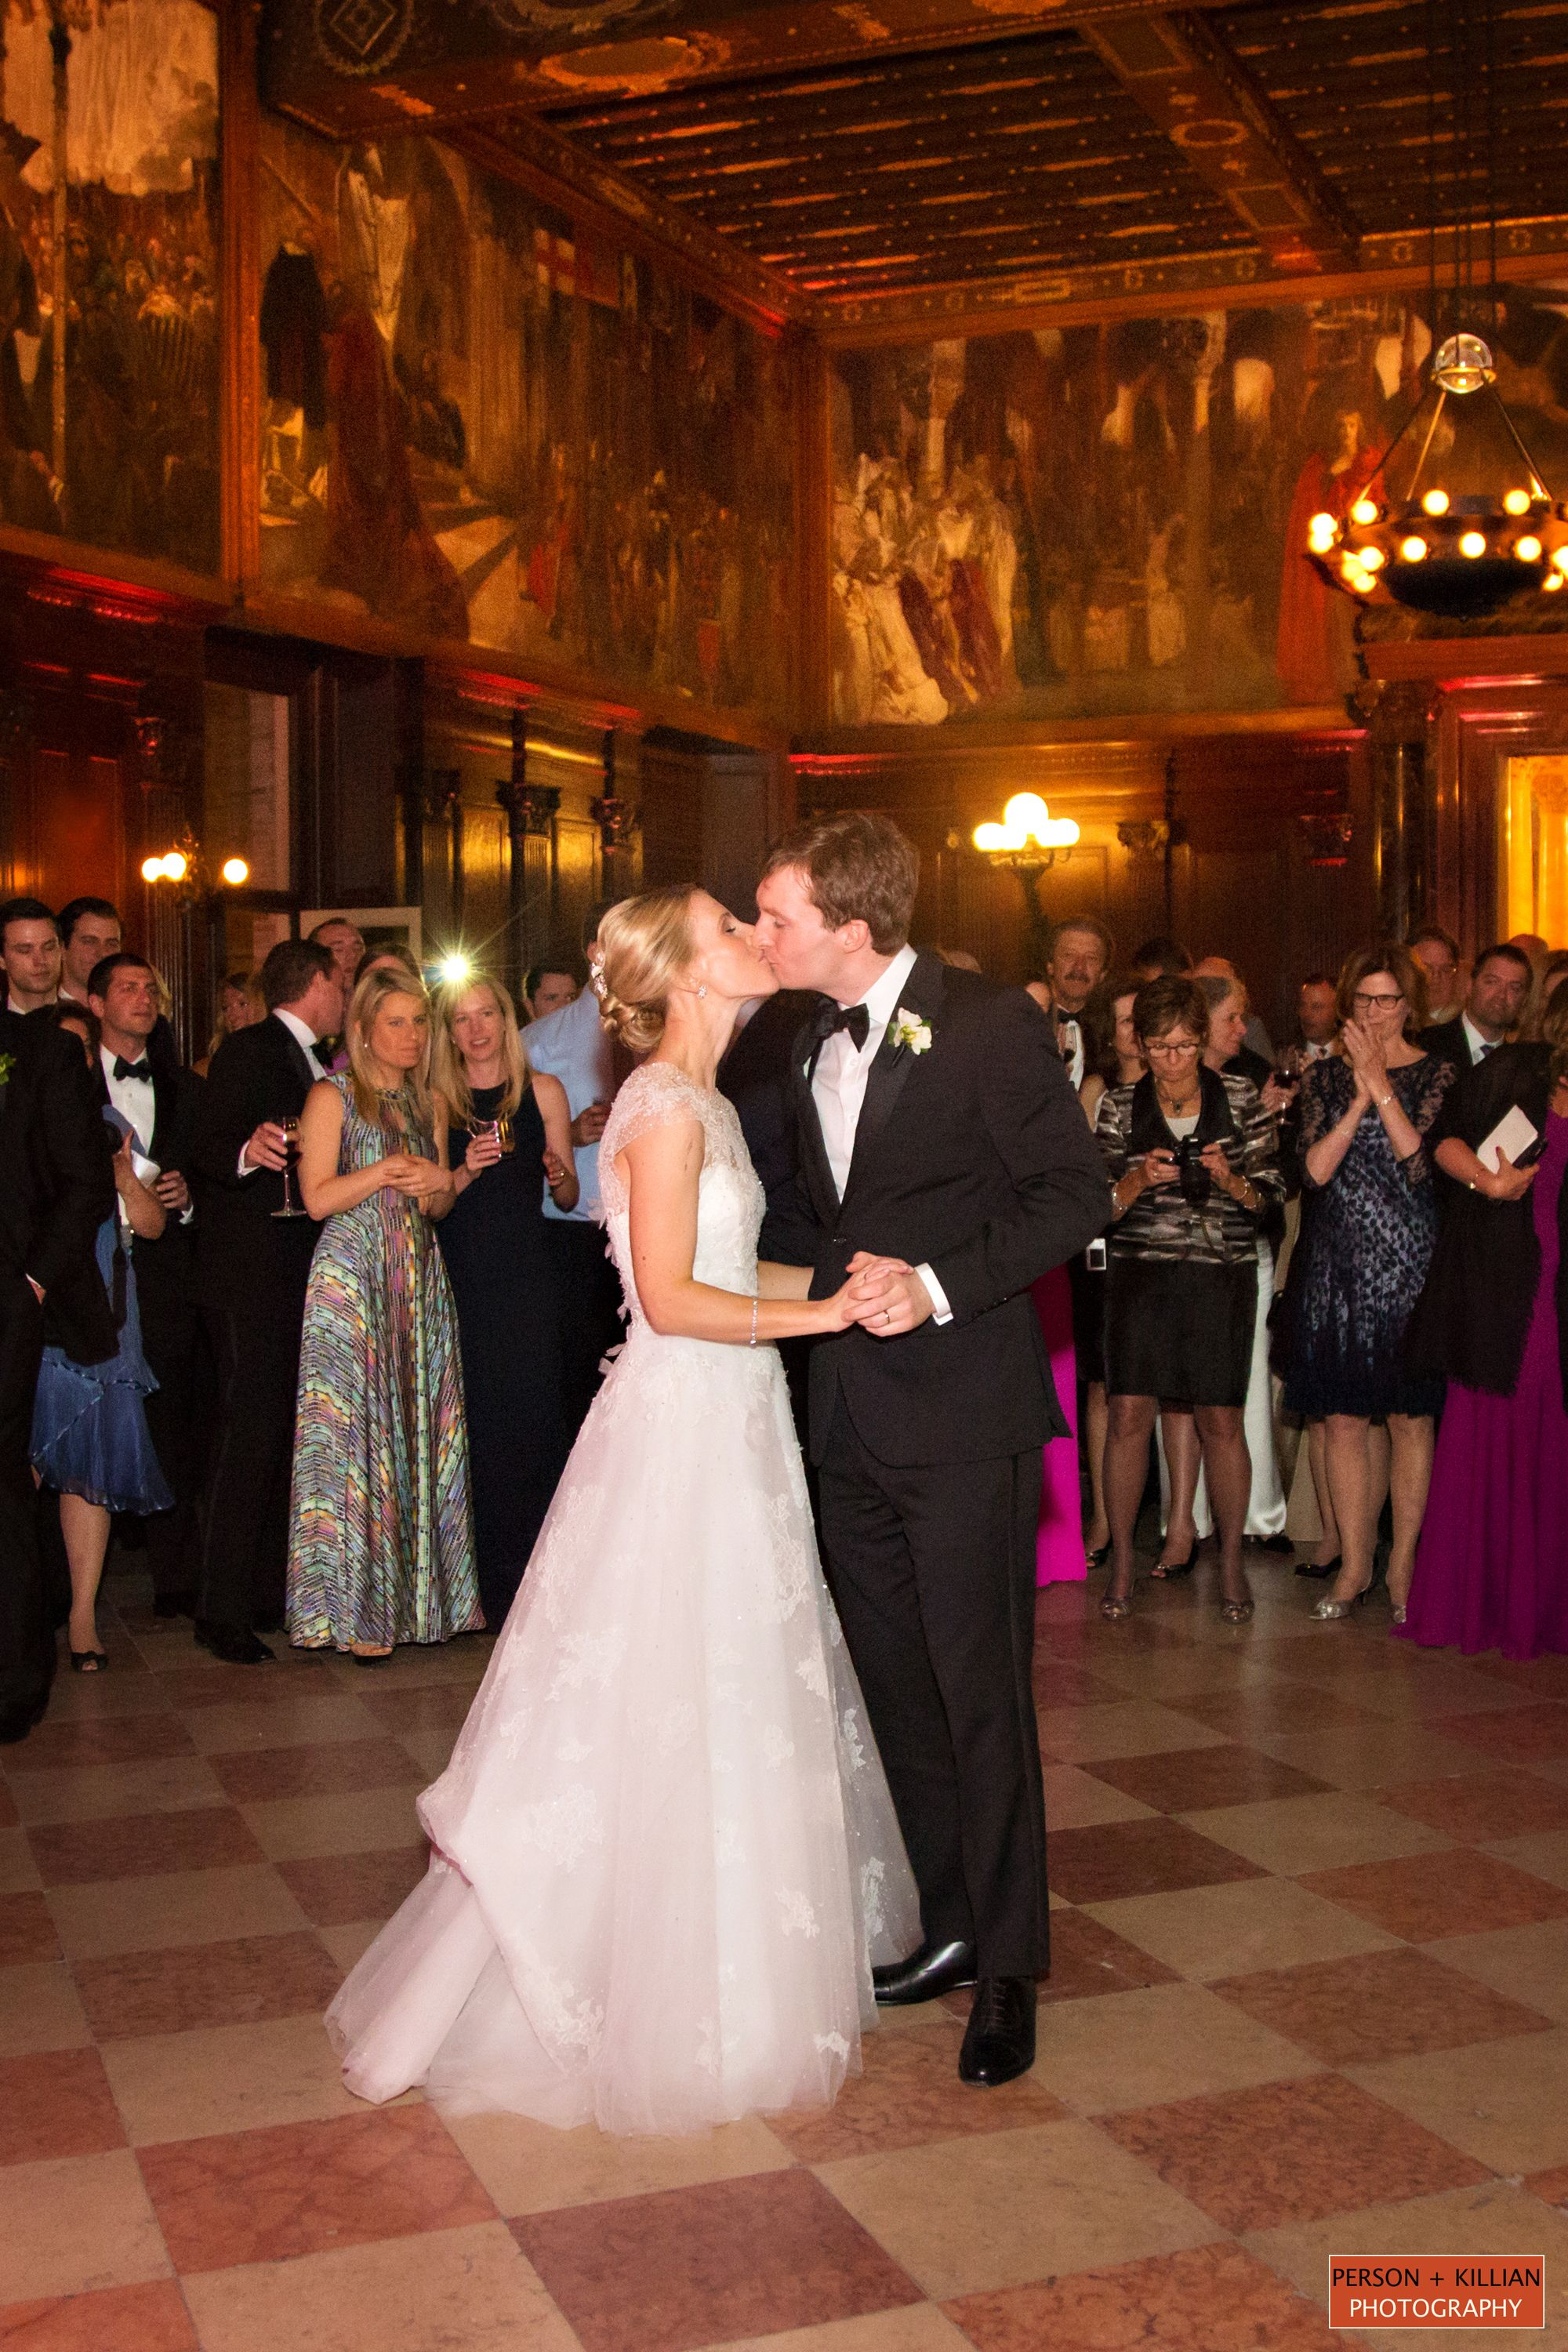 First Dance Wedding Reception At The Boston Public Library Catered Affair